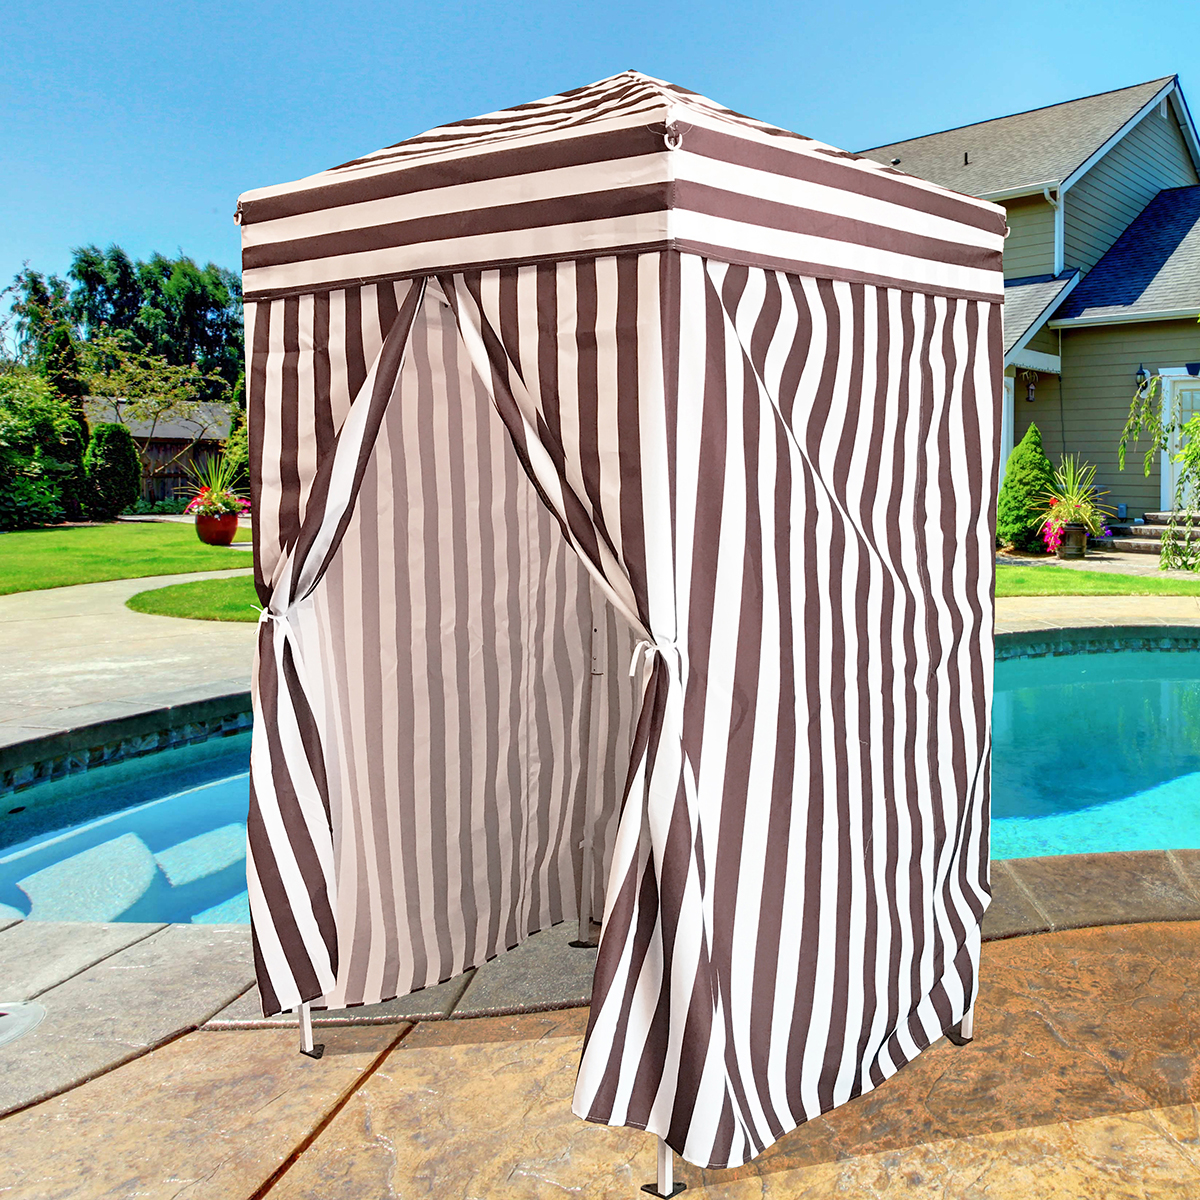 Changing Shower Cabana Stripe Beach Privacy Tent Pool